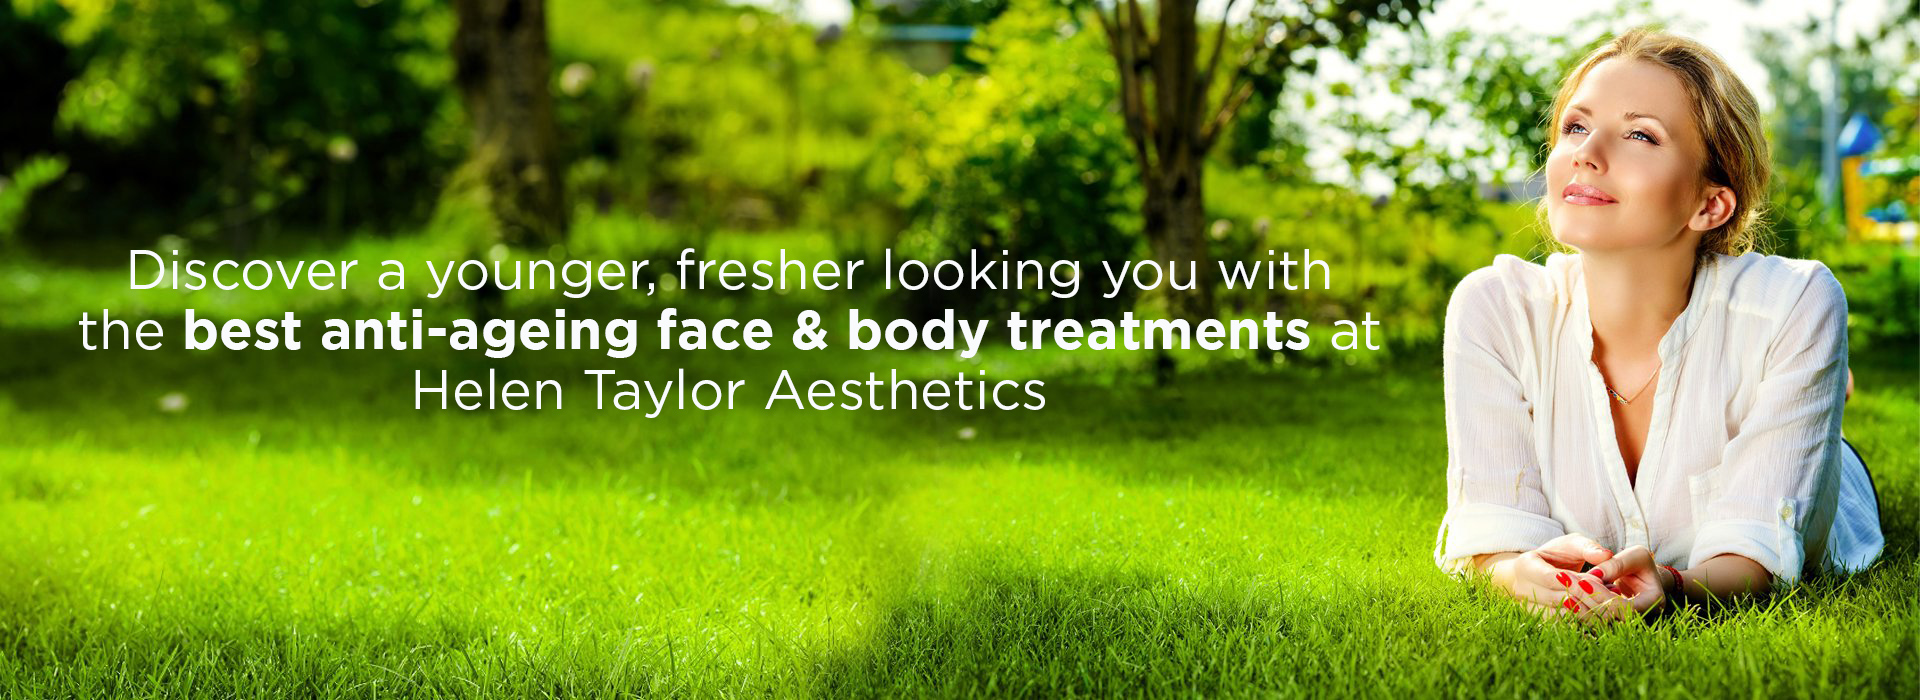 Discover a younger fresher looking you with the best anti ageing face body treatments at Helen Taylor Aesthetics banner